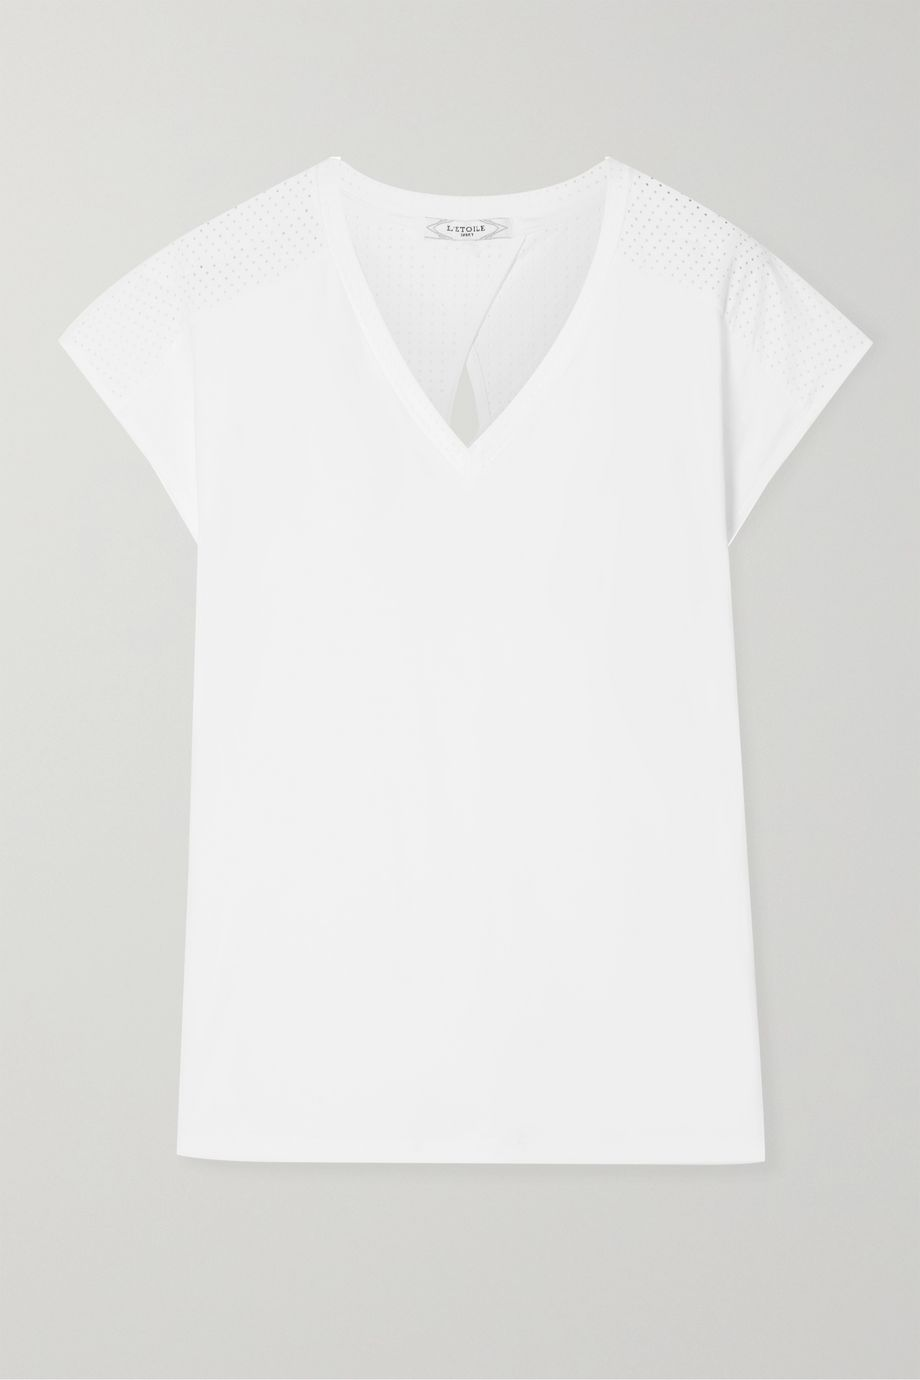 L'Etoile Sport Performance perforated stretch-jersey tennis T-shirt